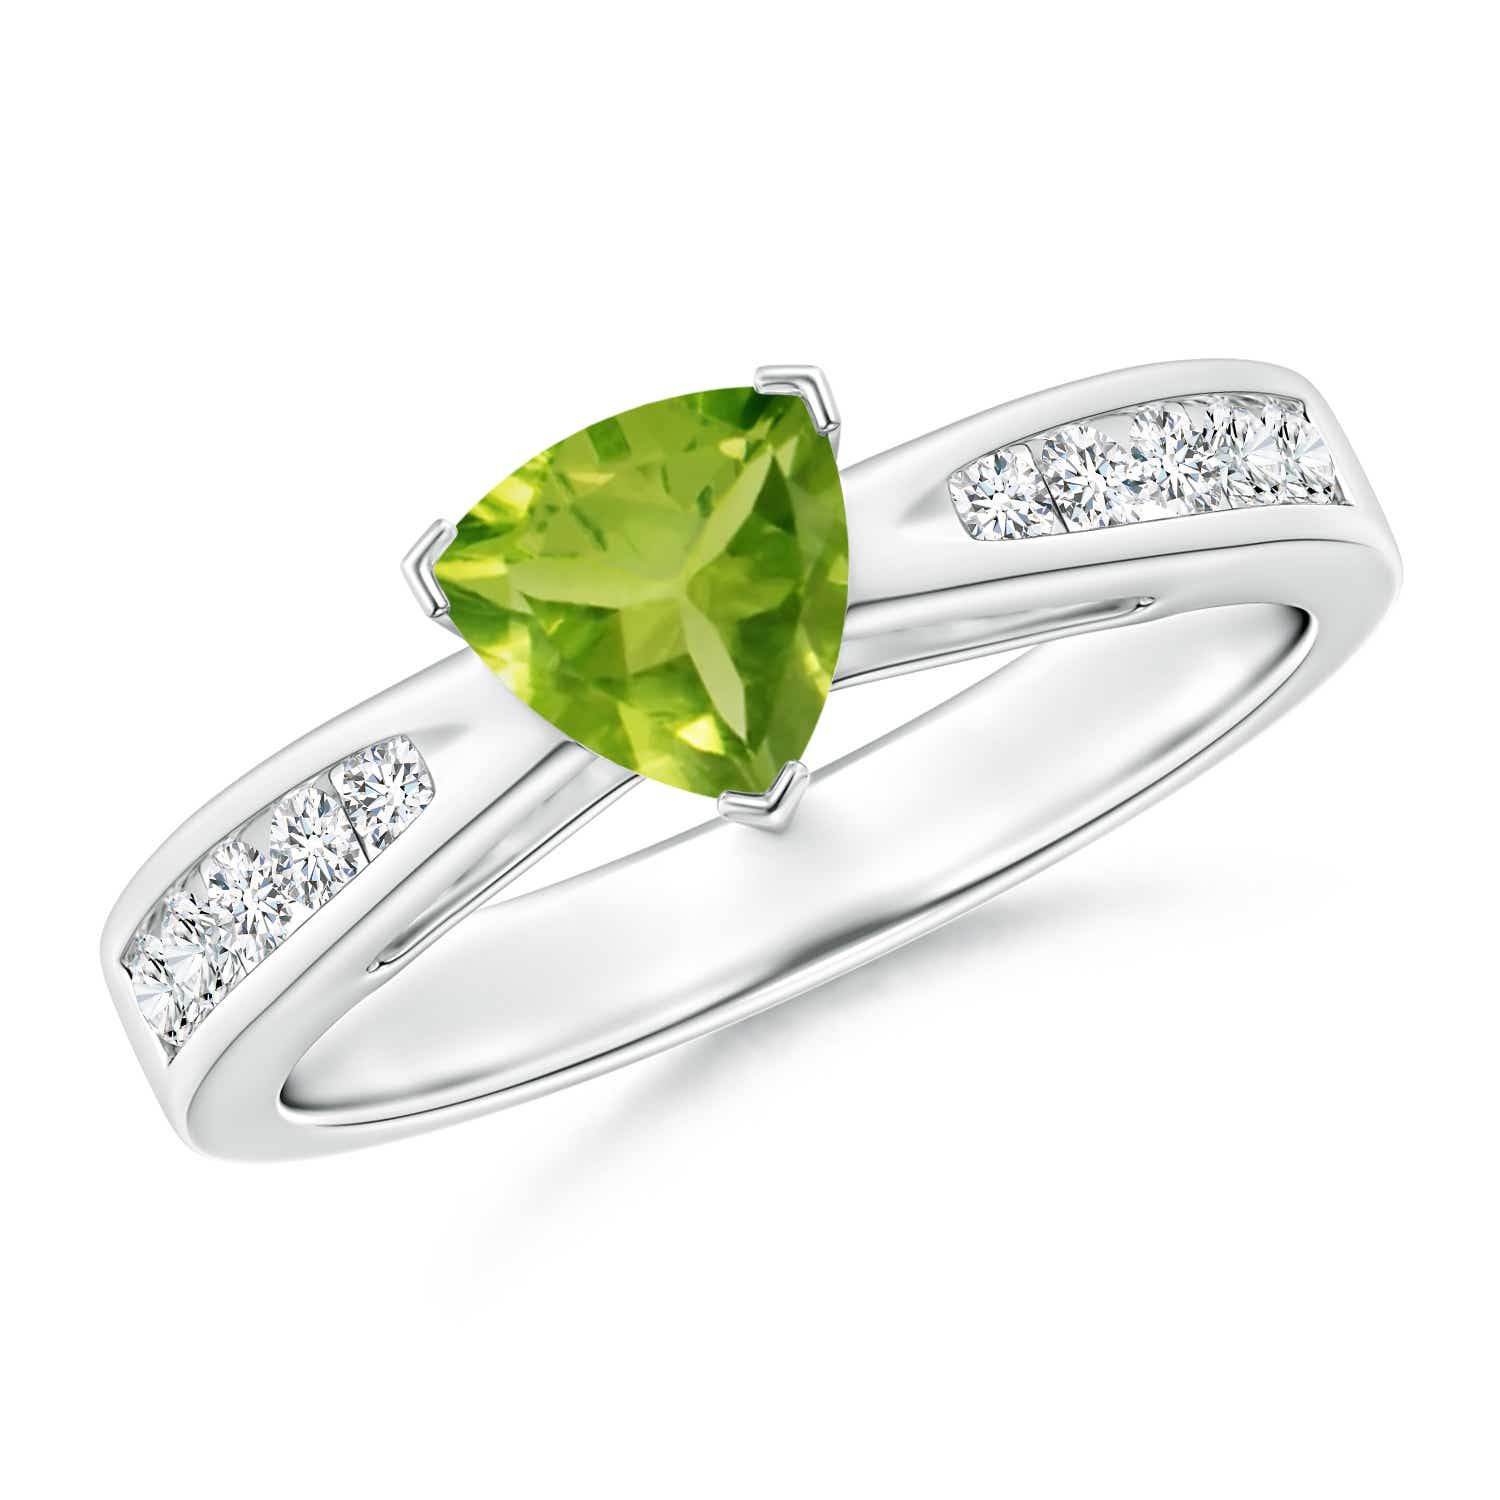 Trillion Peridot Solitaire Ring with Diamond Accents - Angara.com